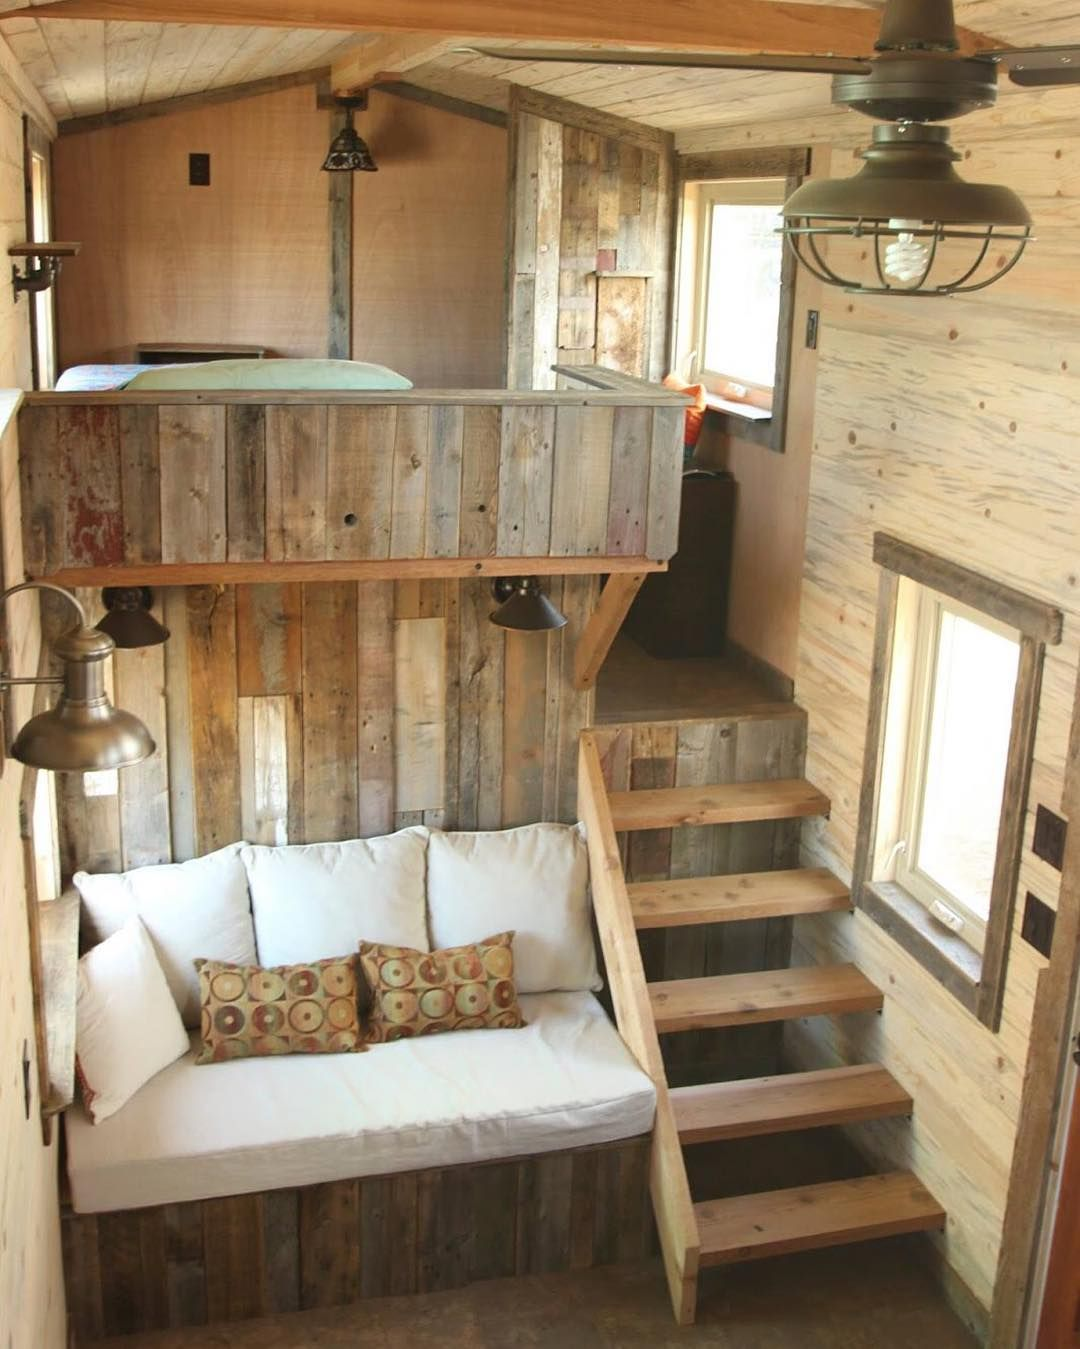 pin by gk sison on ideas in 2019 tiny house tiny house cabin rh pinterest com